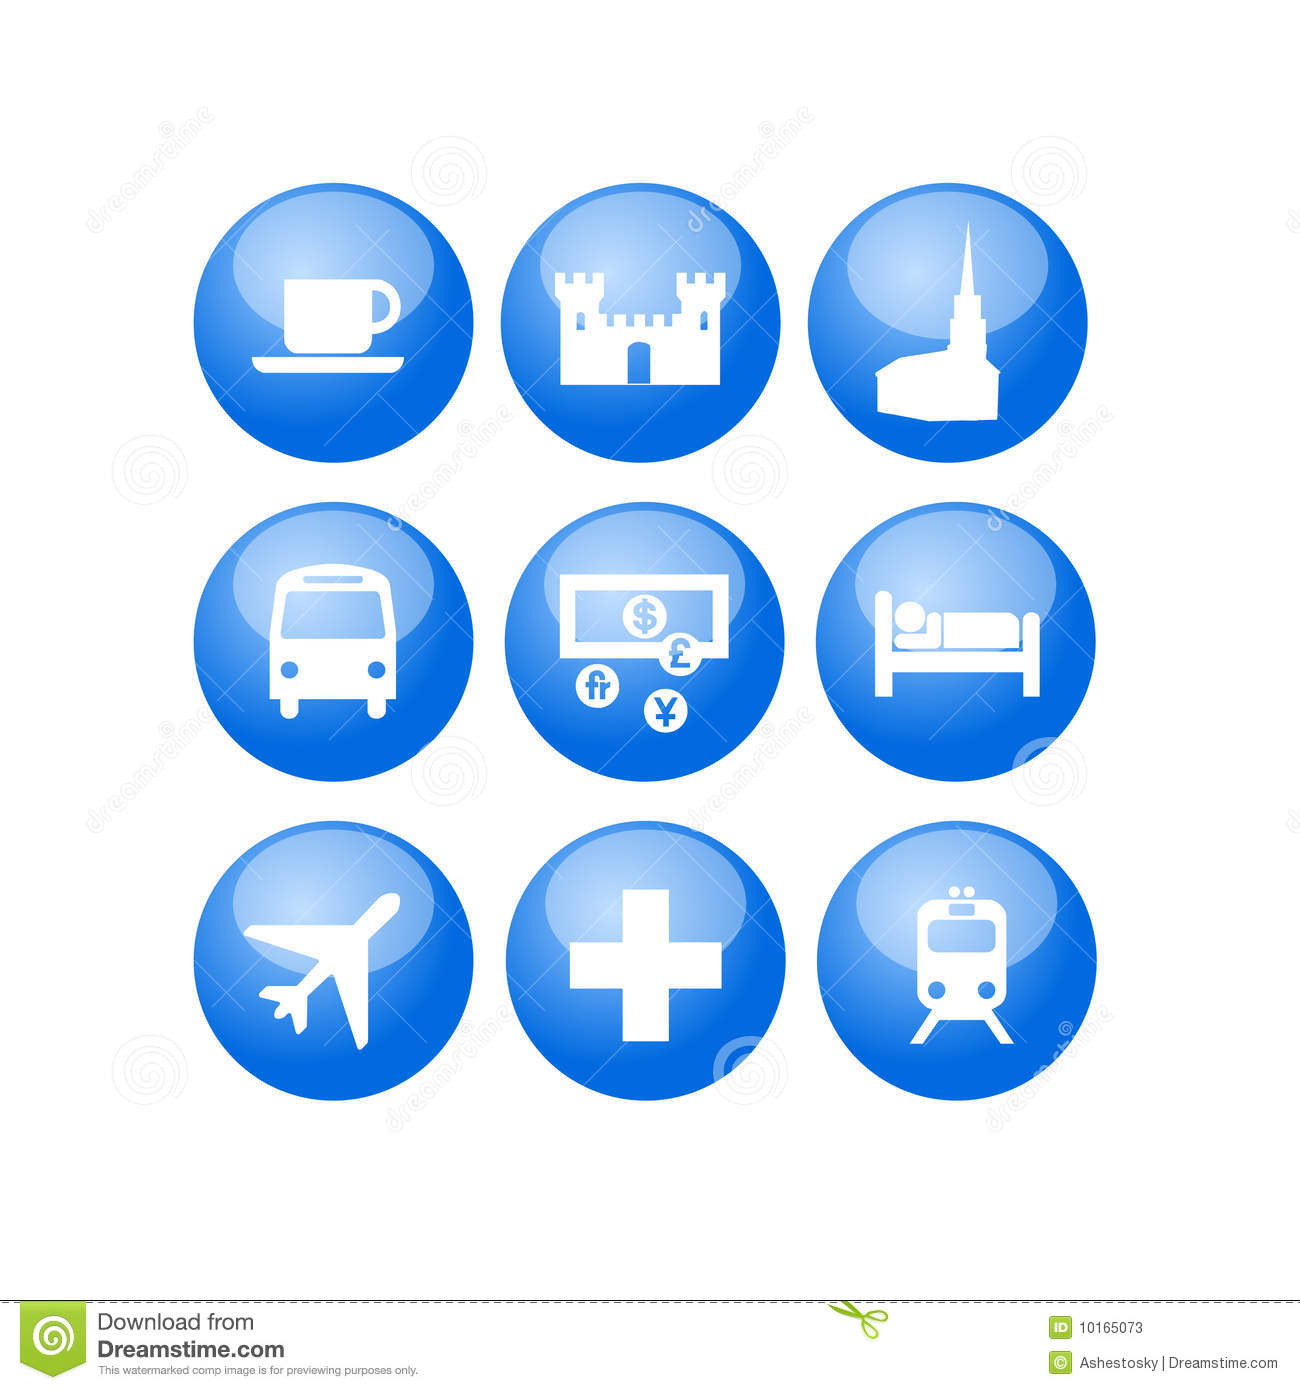 Travel Map Guide Utility Icons Stock Vector Illustration Of - Travel mapping software